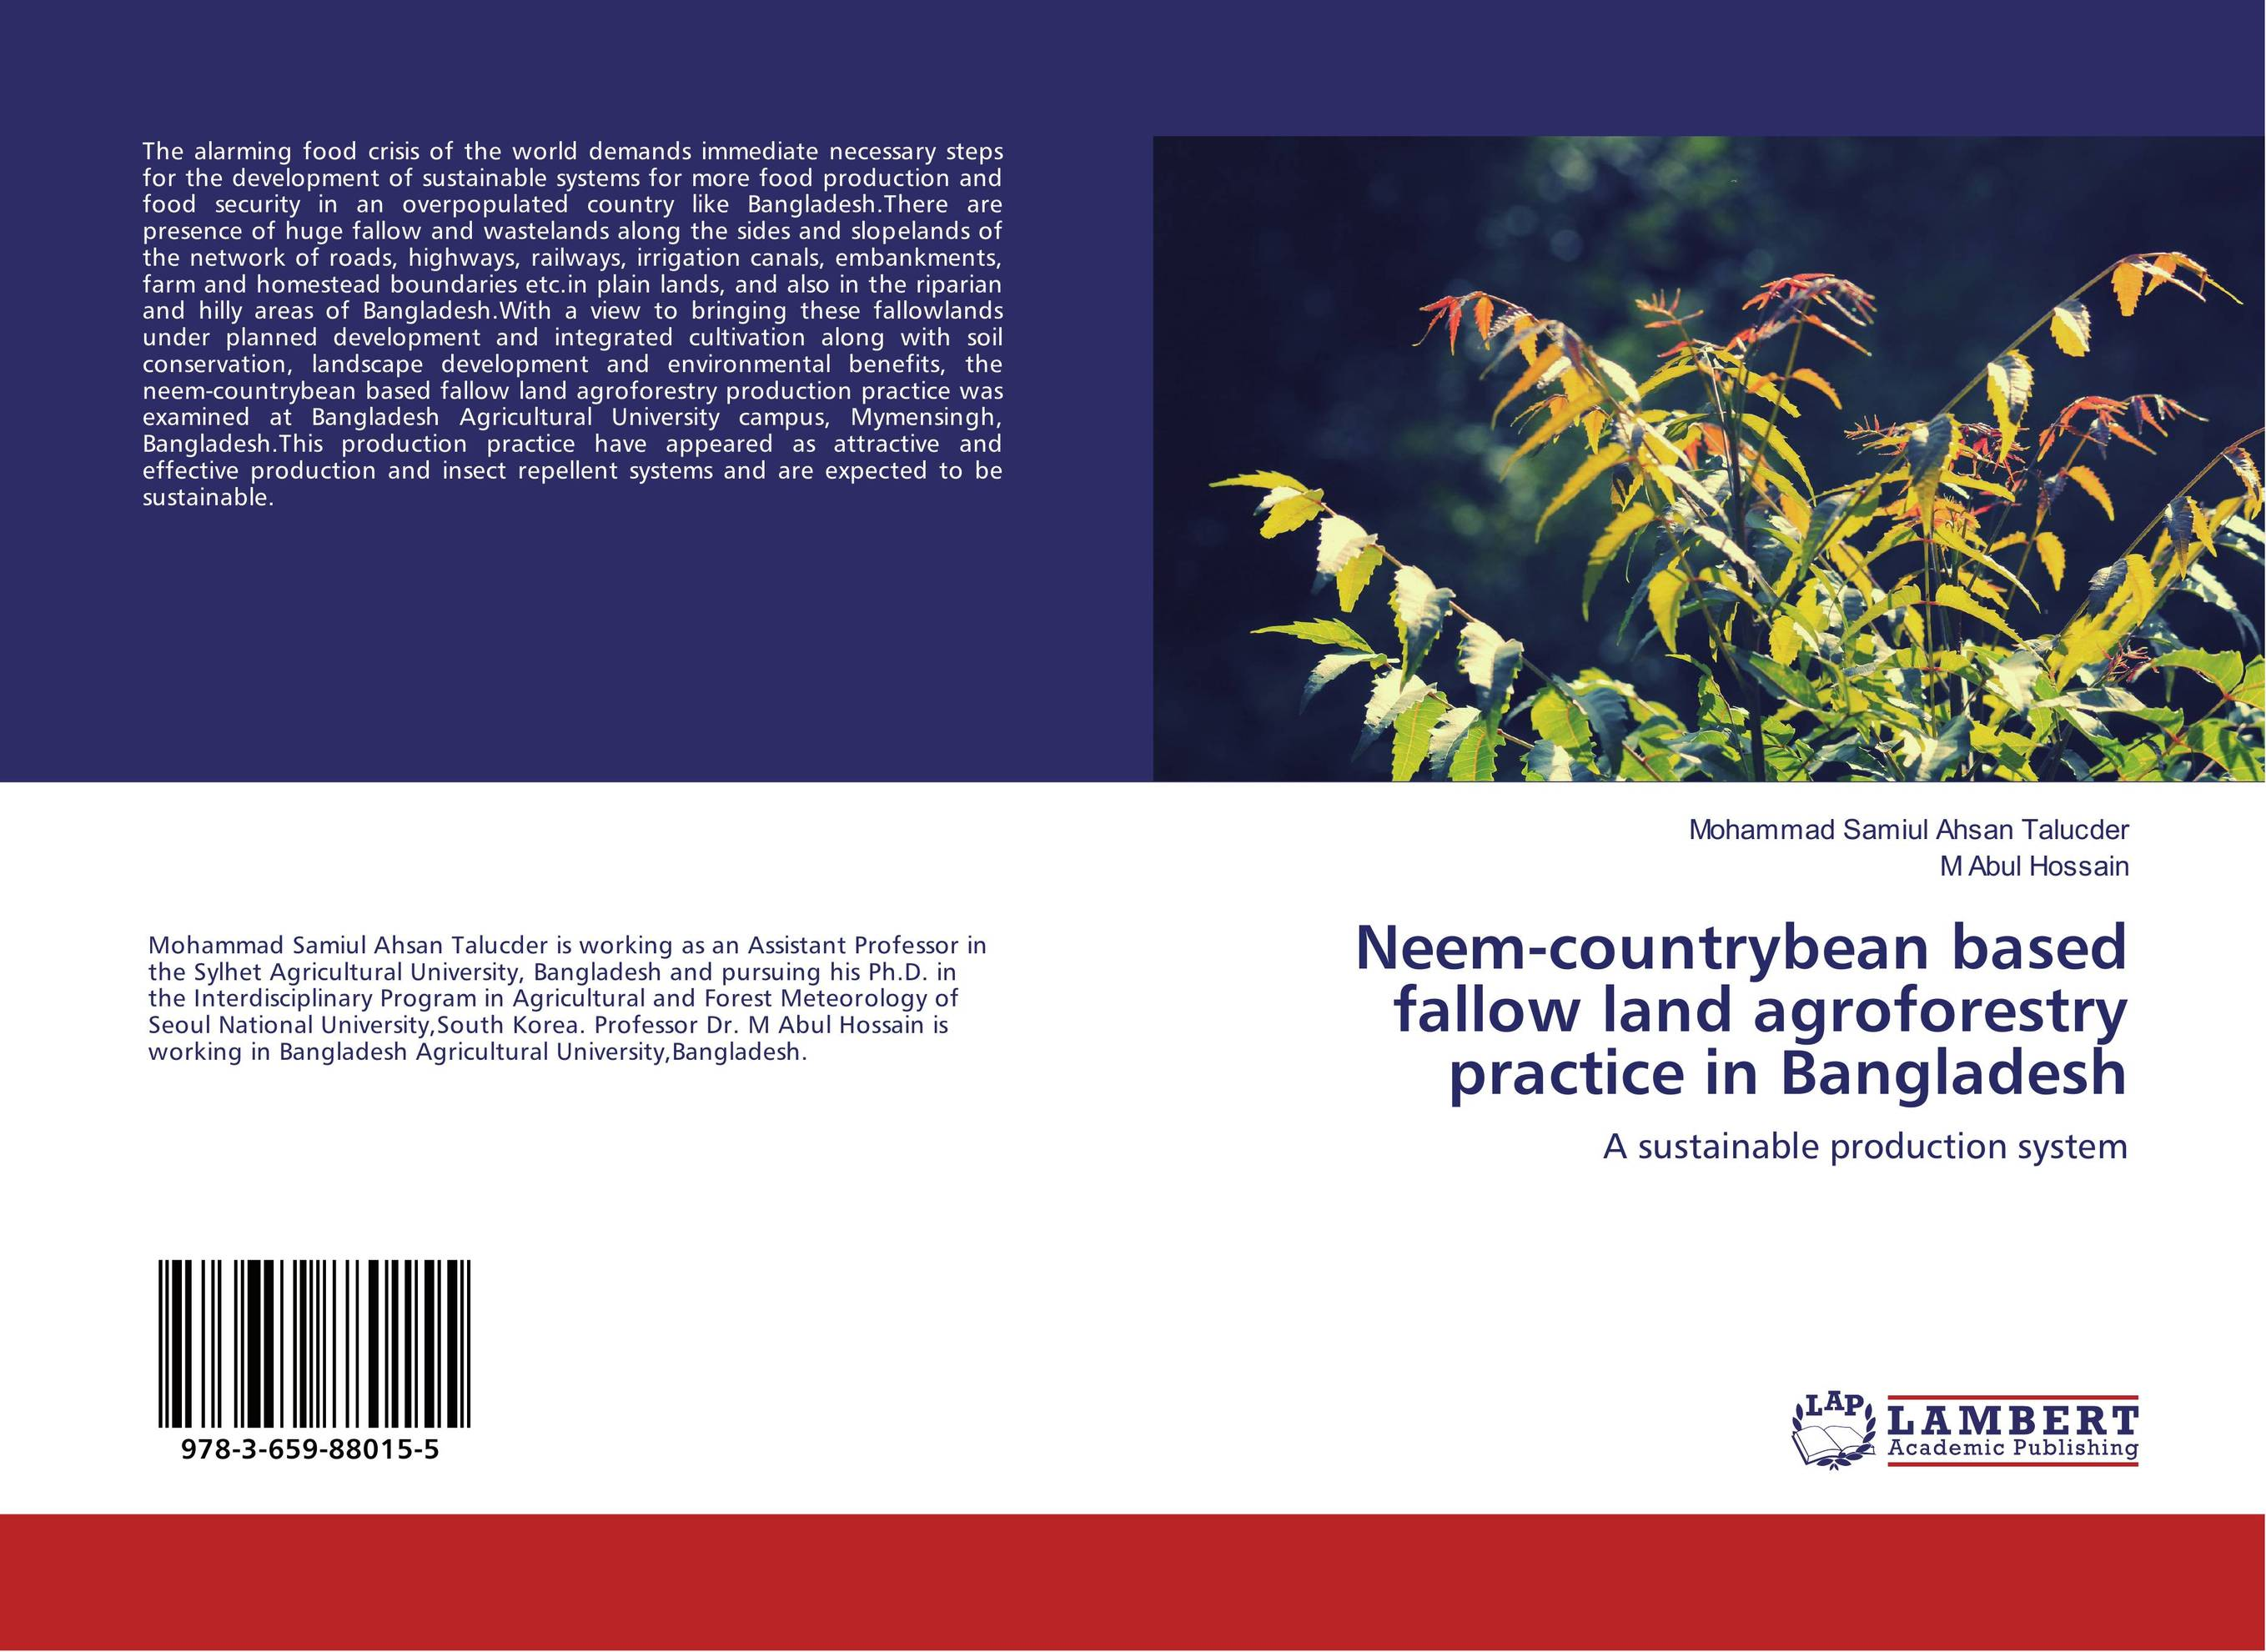 Neem-countrybean based fallow land agroforestry practice in Bangladesh bio economic evaluation of agroforestry and monoculture systems